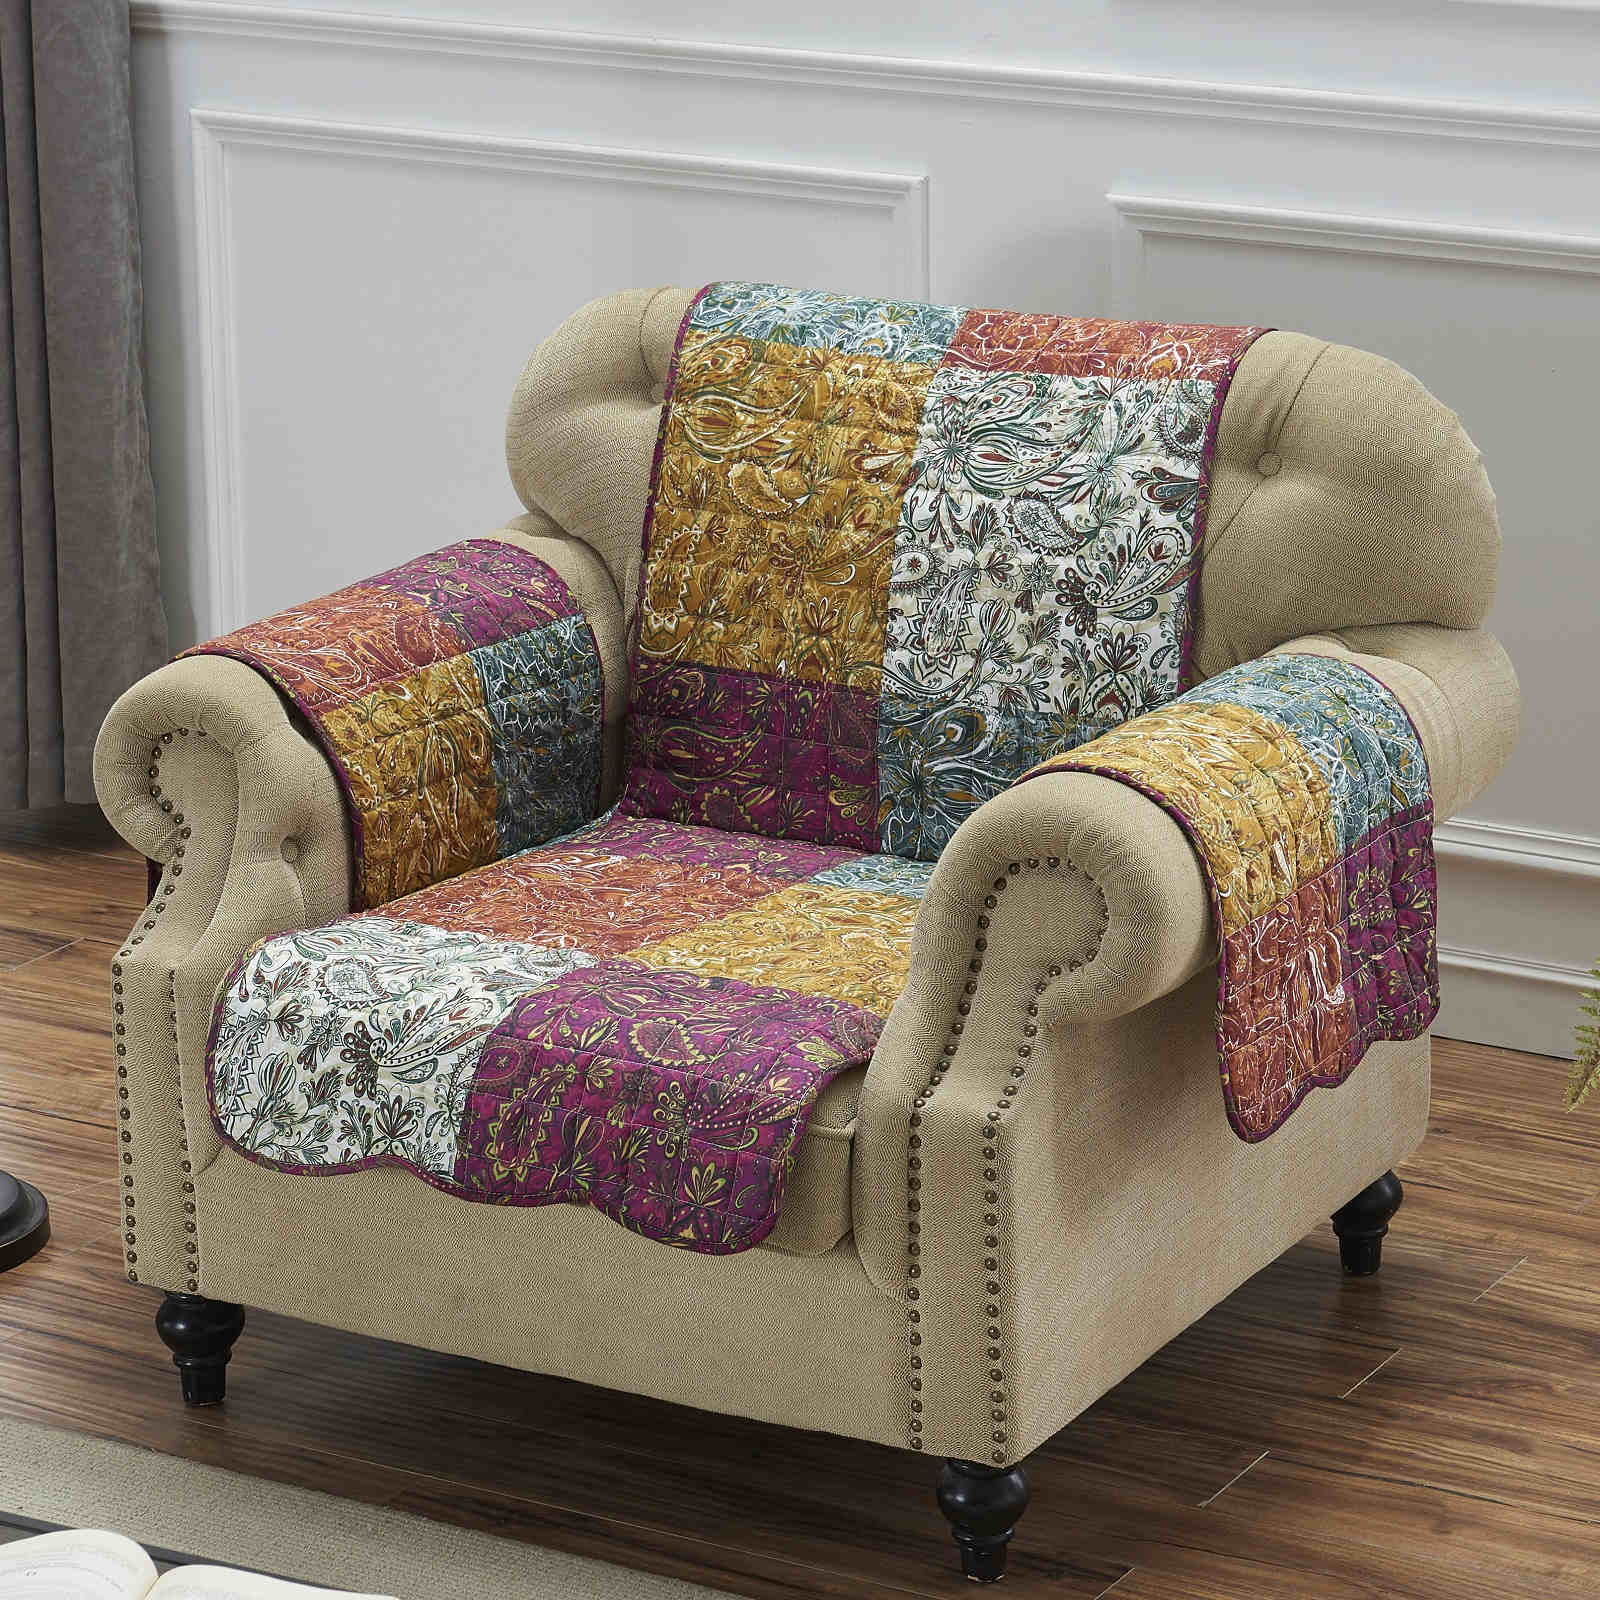 Paisley Slumber Spice Furniture Protector Arm Chair